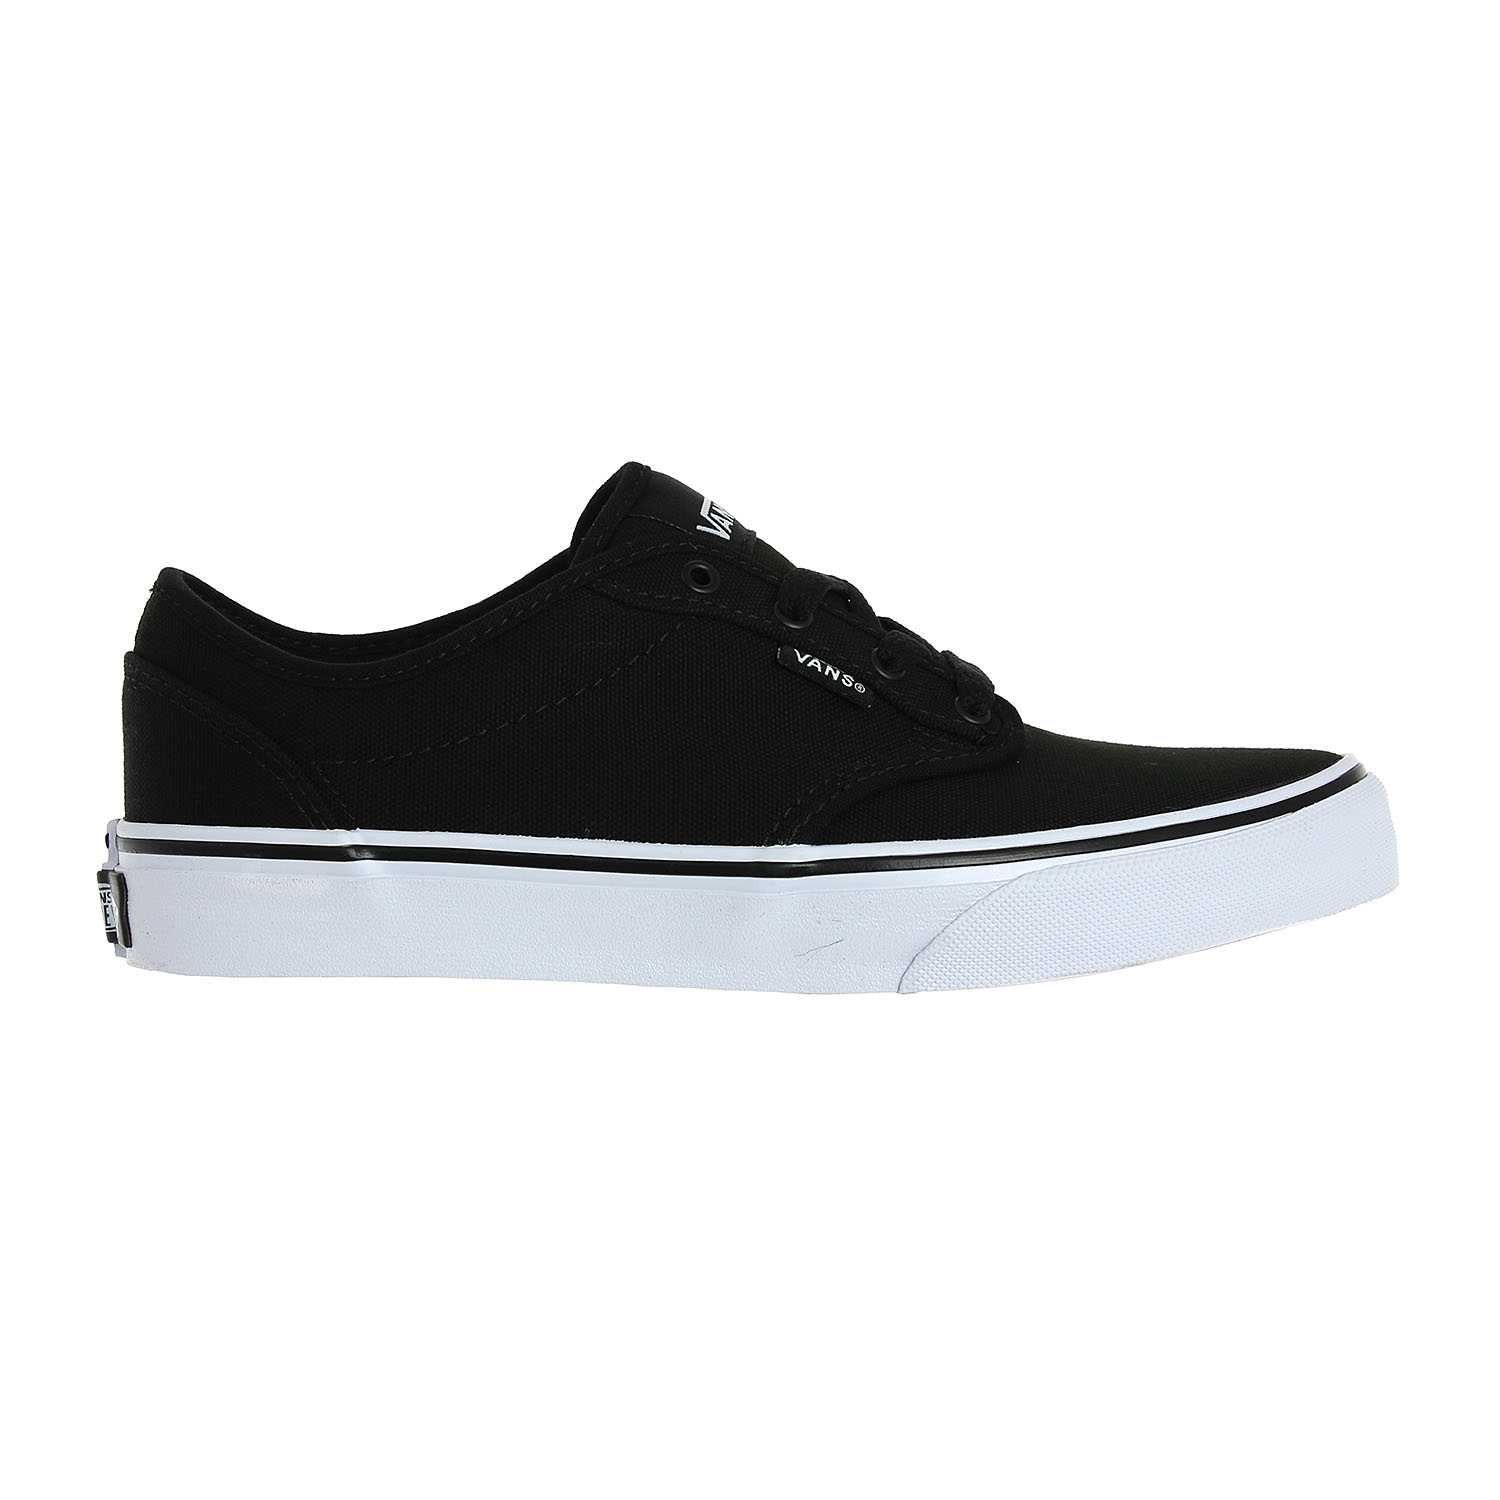 58e96960cd3 All About Sneakers Vans Atwood W ( VKI5187 )